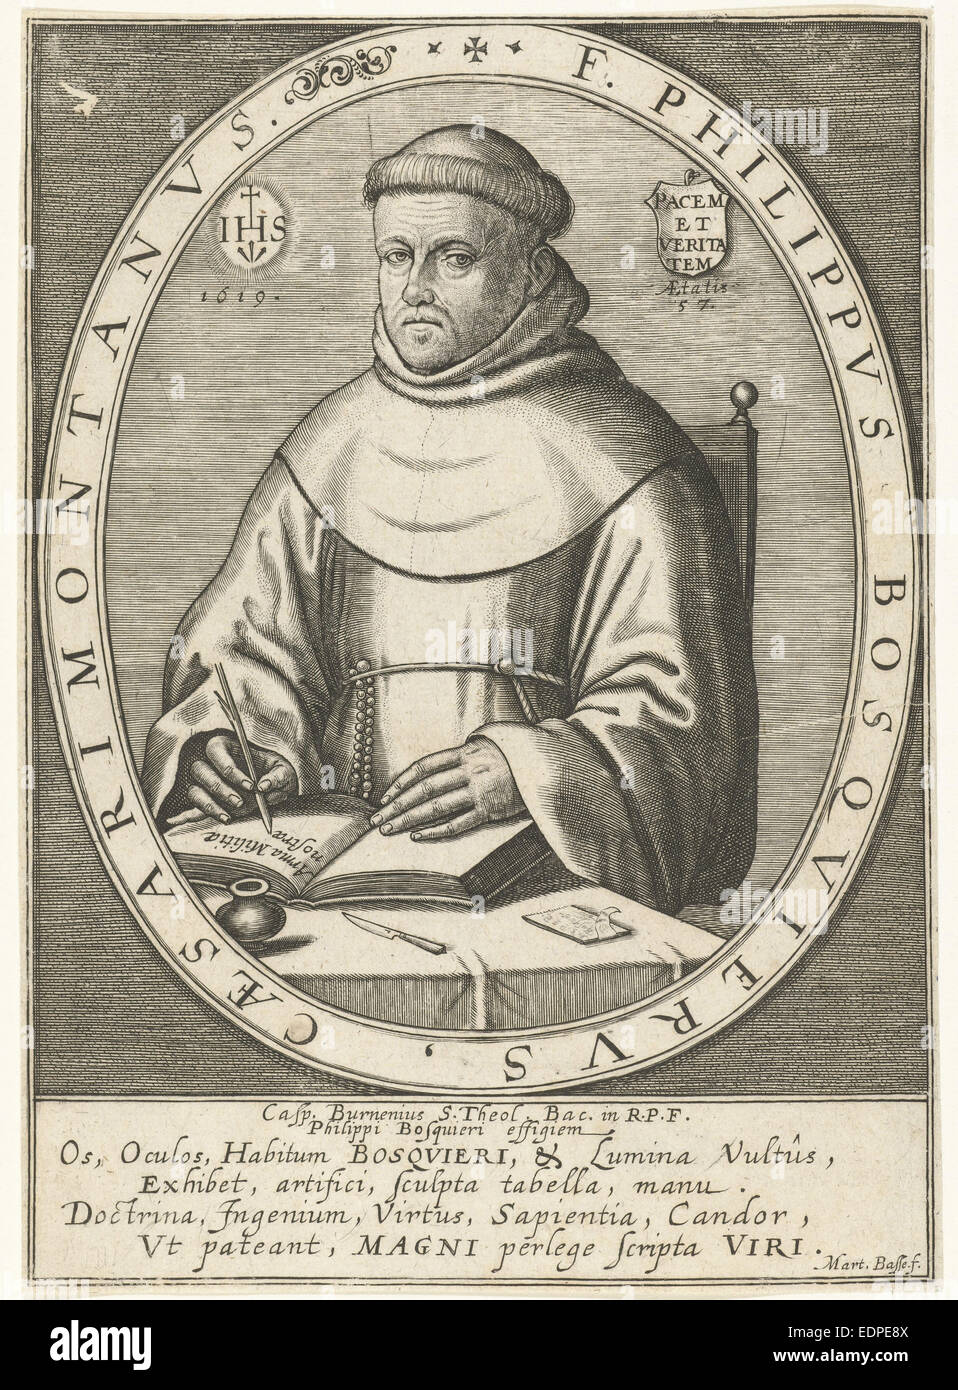 Portrait of Philippe Bosquier at the age of 57, Martin Baes, 1619 - Stock Image